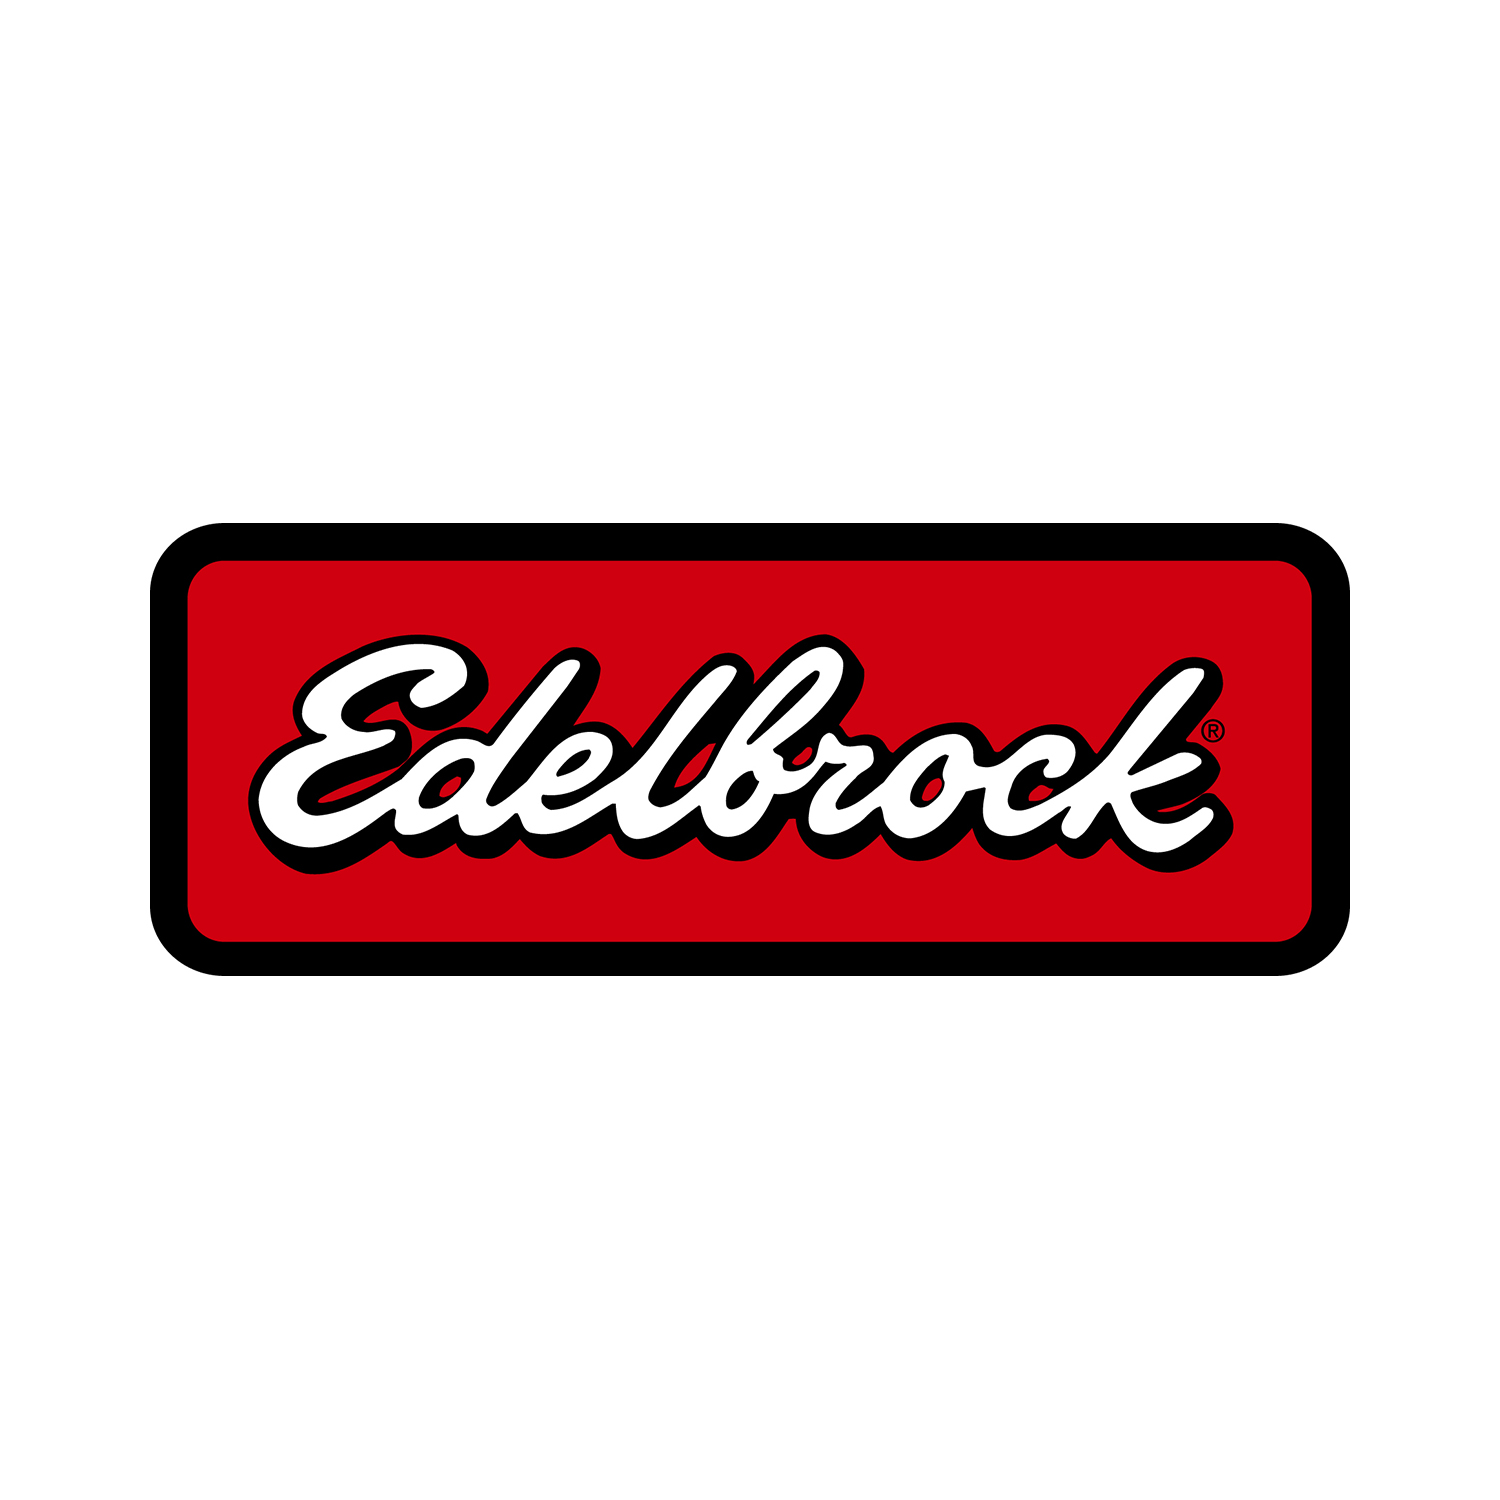 Edelbrock 2098 Performer RPM 410 Top End Kit for 1957-86 Small-Block Chevy  350 engines